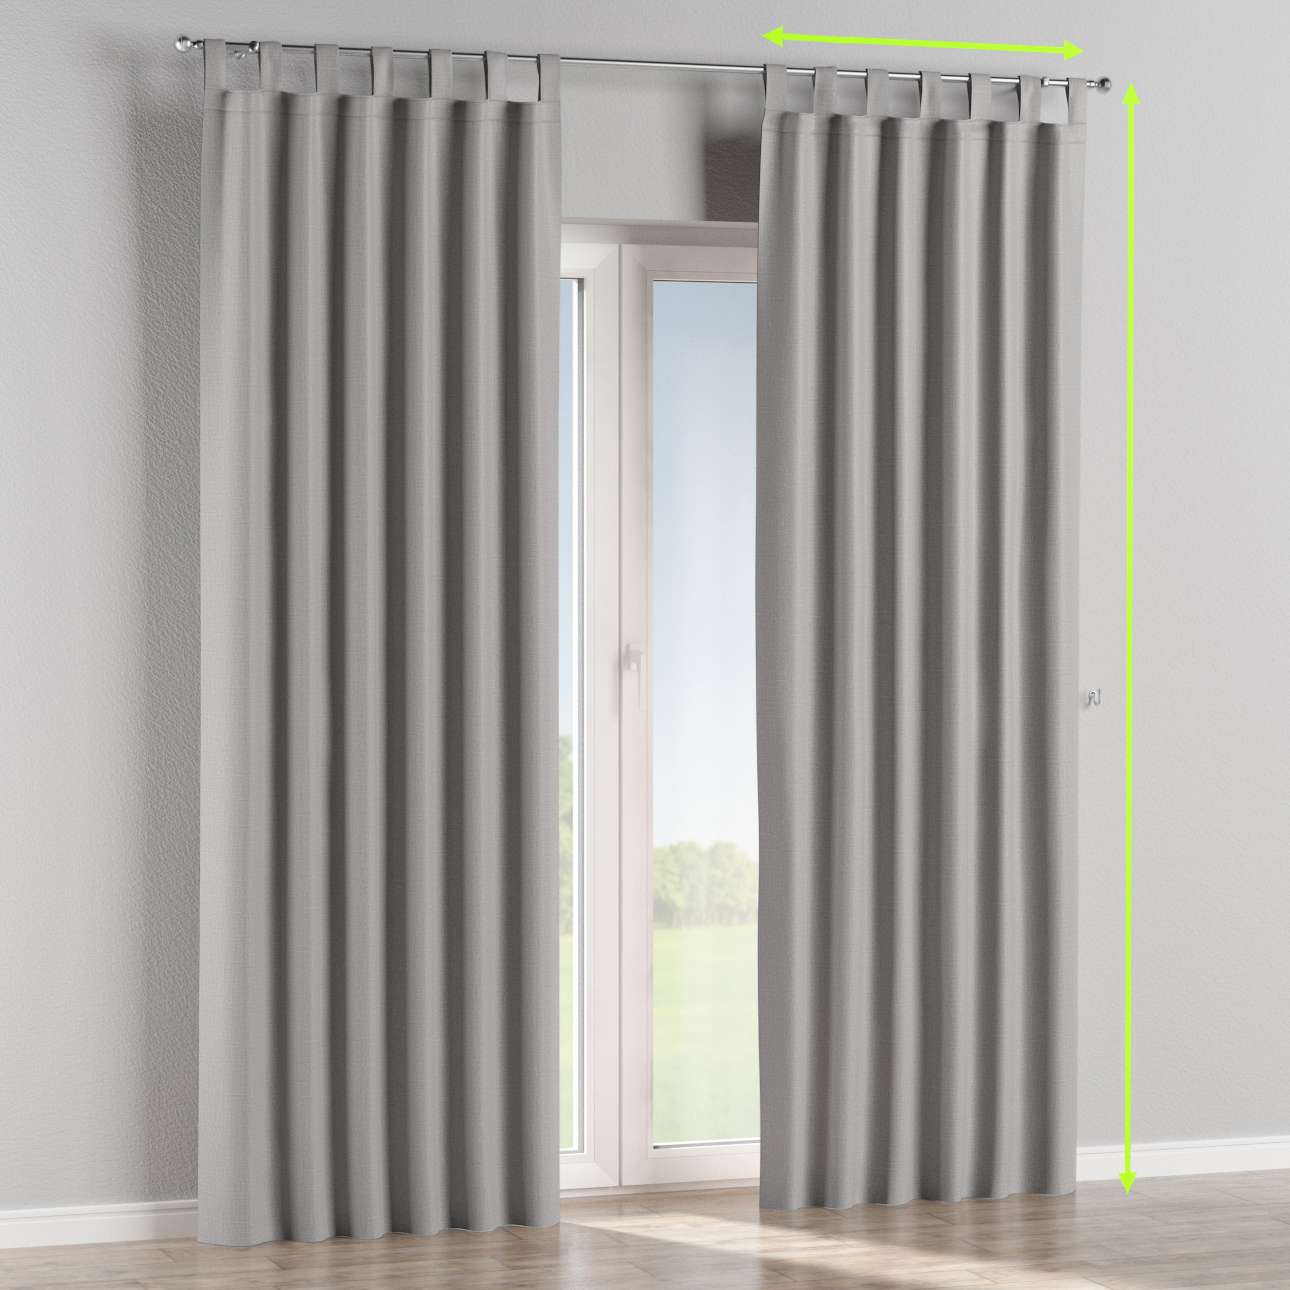 Tab top curtains in collection Blackout, fabric: 269-64